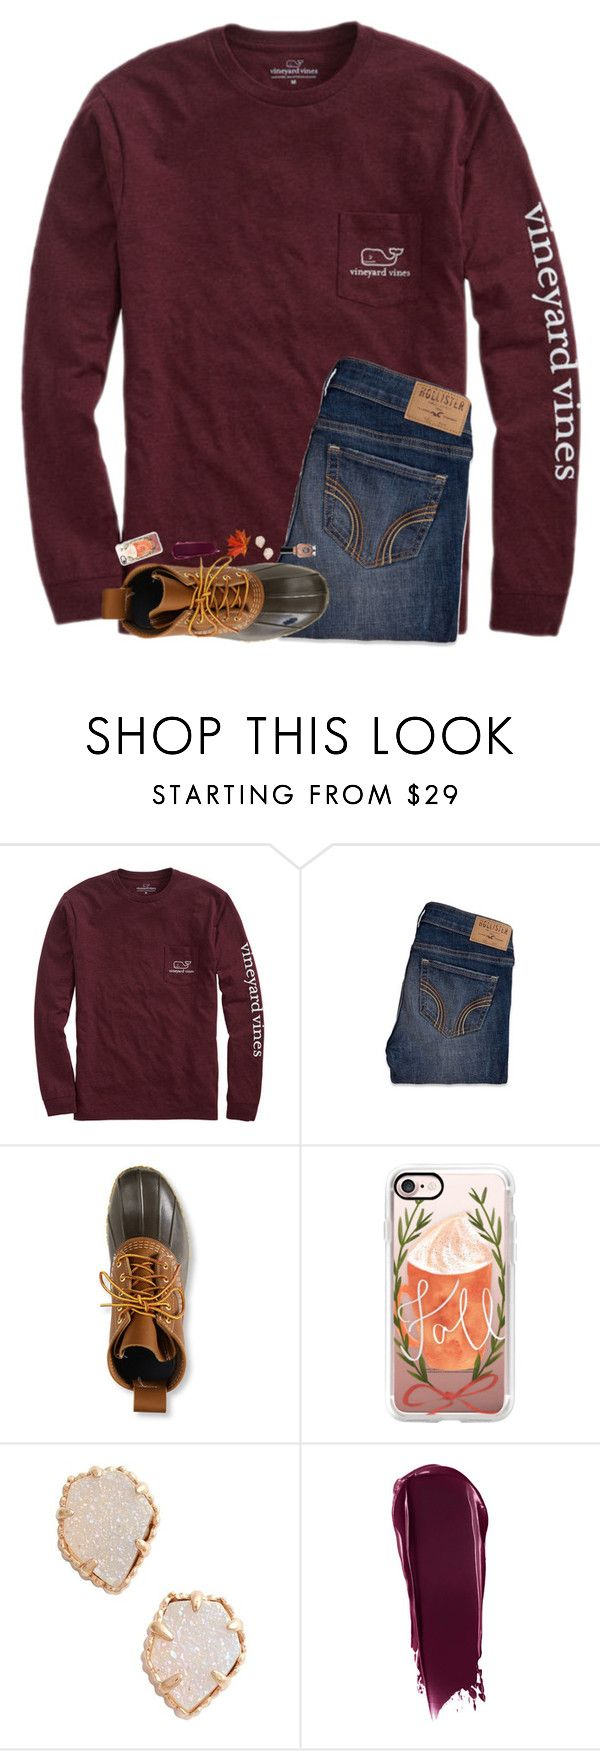 """Finally cold enough to wear my bean boots!!!❤️"" by hgw8503 ❤ liked on Polyvore featuring Vineyard Vines, Hollister Co., L.L.Bean, Casetify, Kendra Scott, NARS Cosmetics and Sally Hansen"